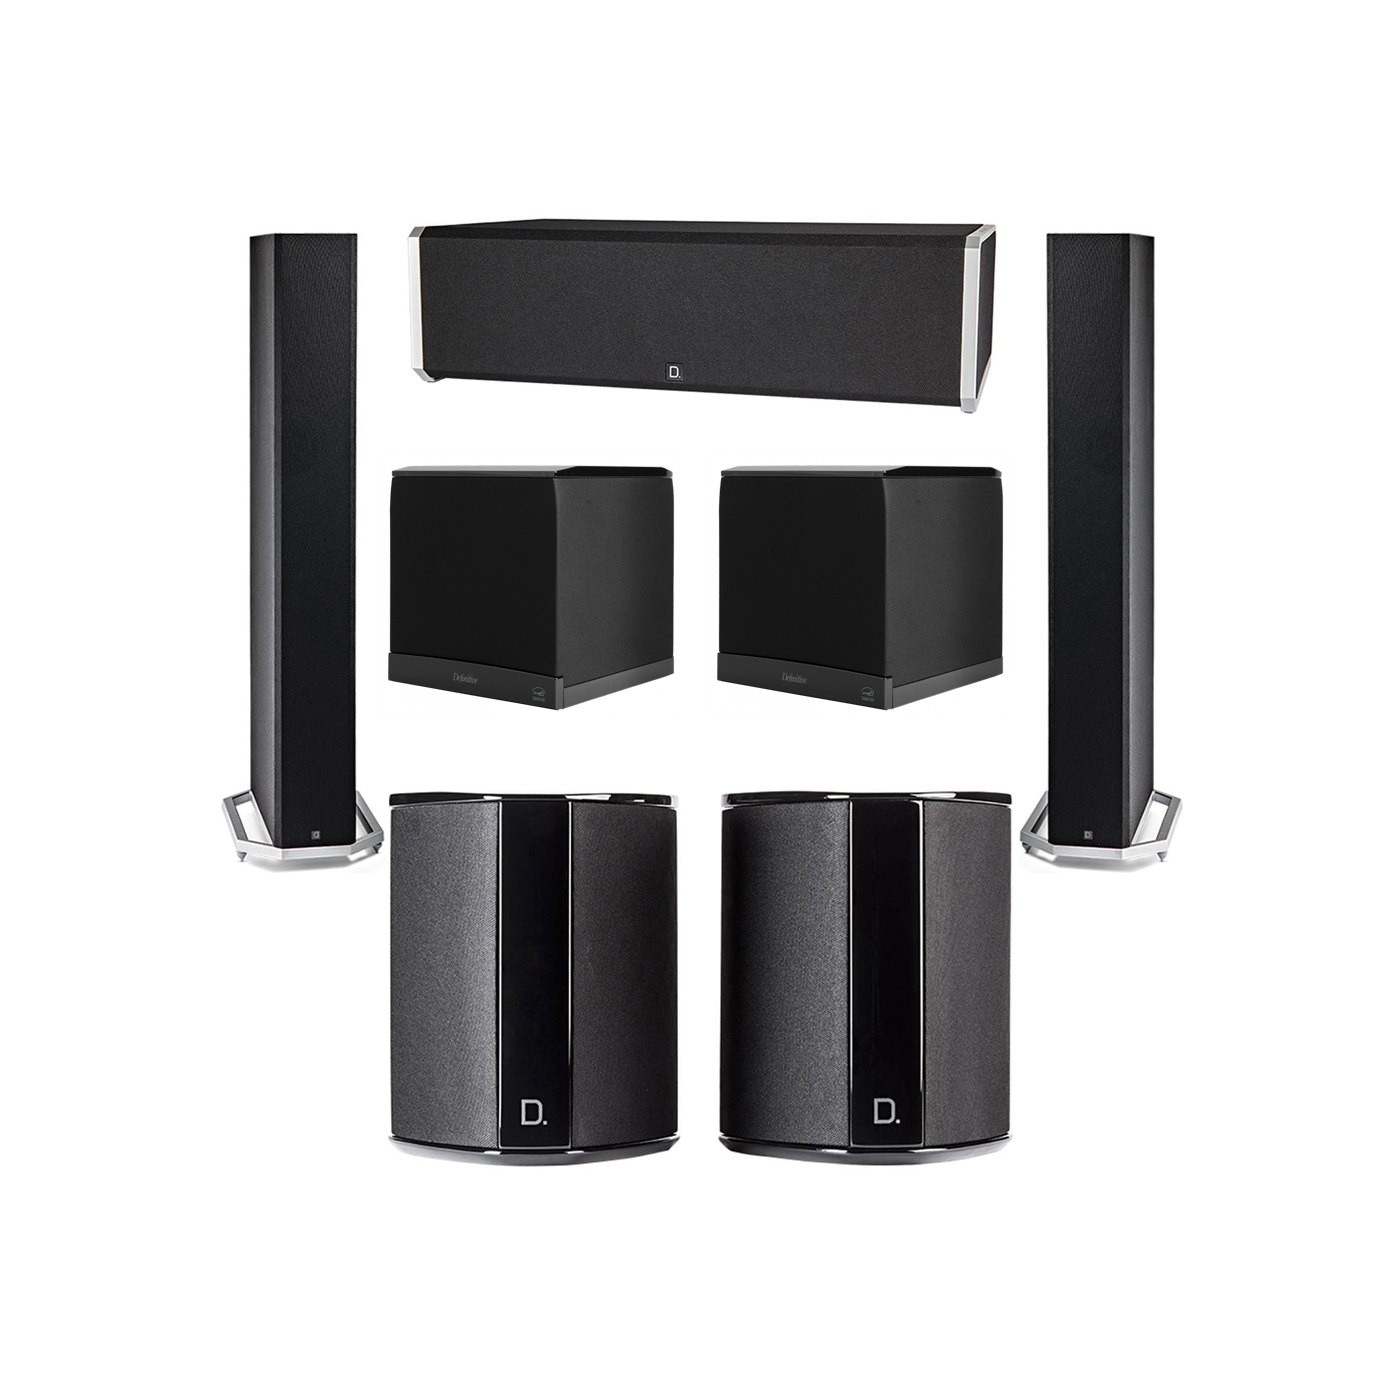 Definitive Technology 5.2 System with 2 BP9060 Tower Speakers, 1 CS9040 Center Channel Speaker, 2 SR9040 Surround Speaker, 2 Definitive Technology SuperCube 6000 Powered Subwoofer